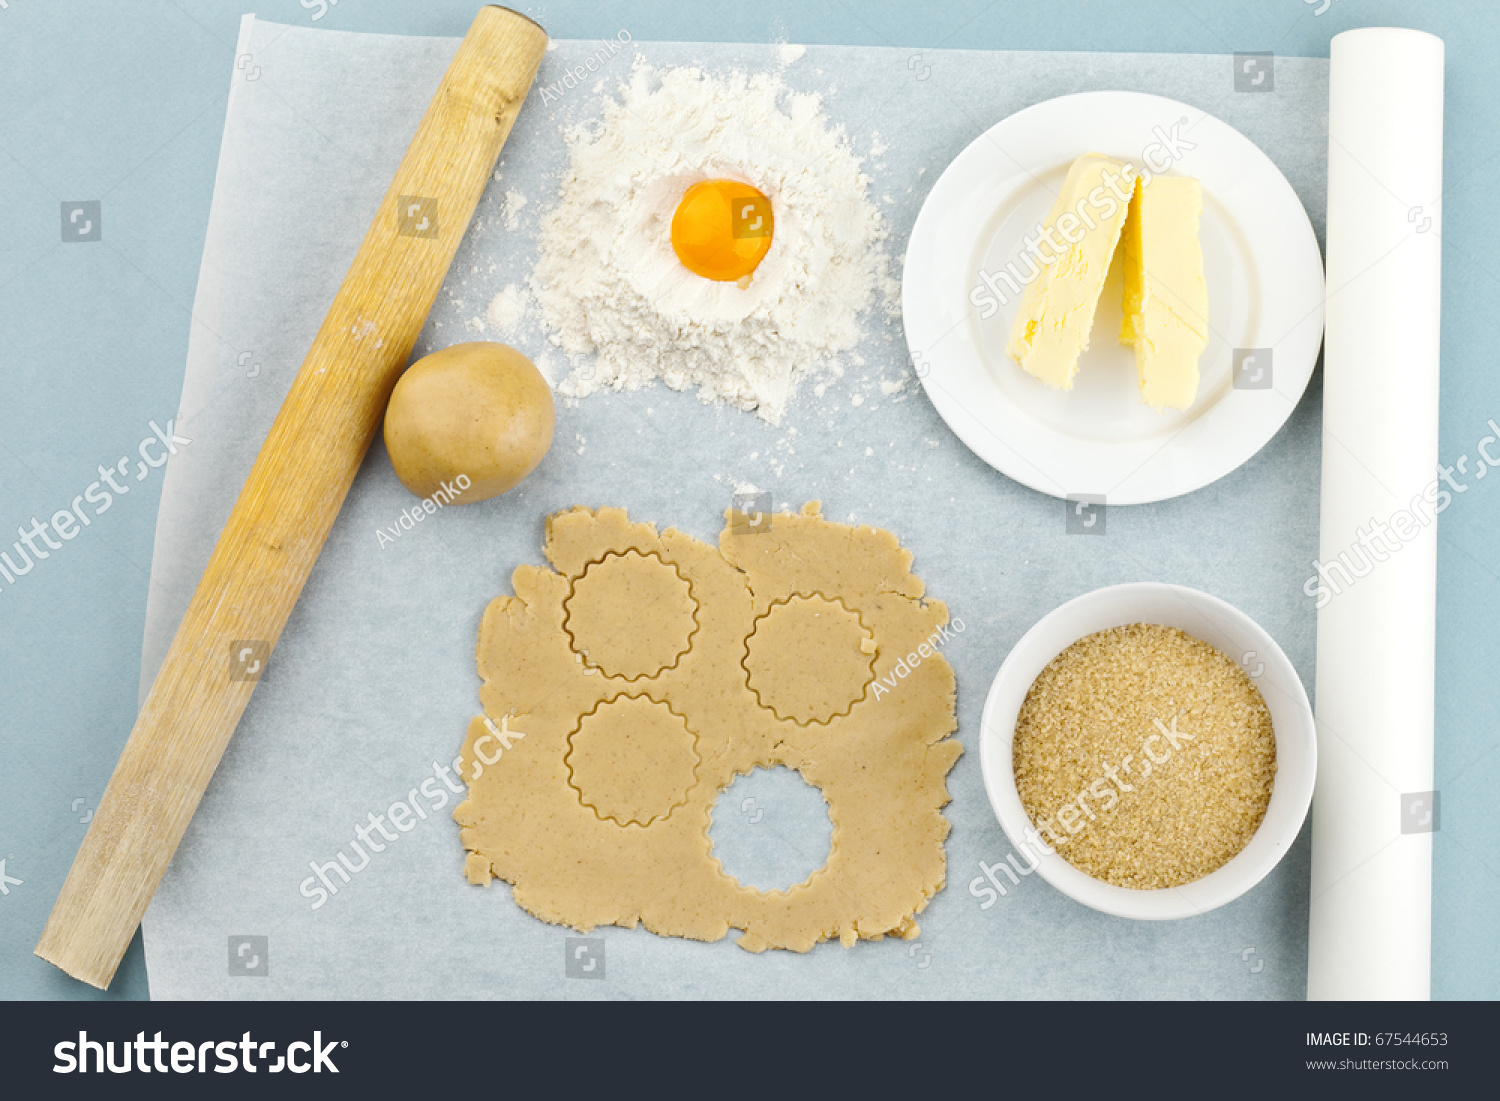 Baking ingredients shortcrust pastry stock photo 67544653 for Shortcrust pastry ingredients